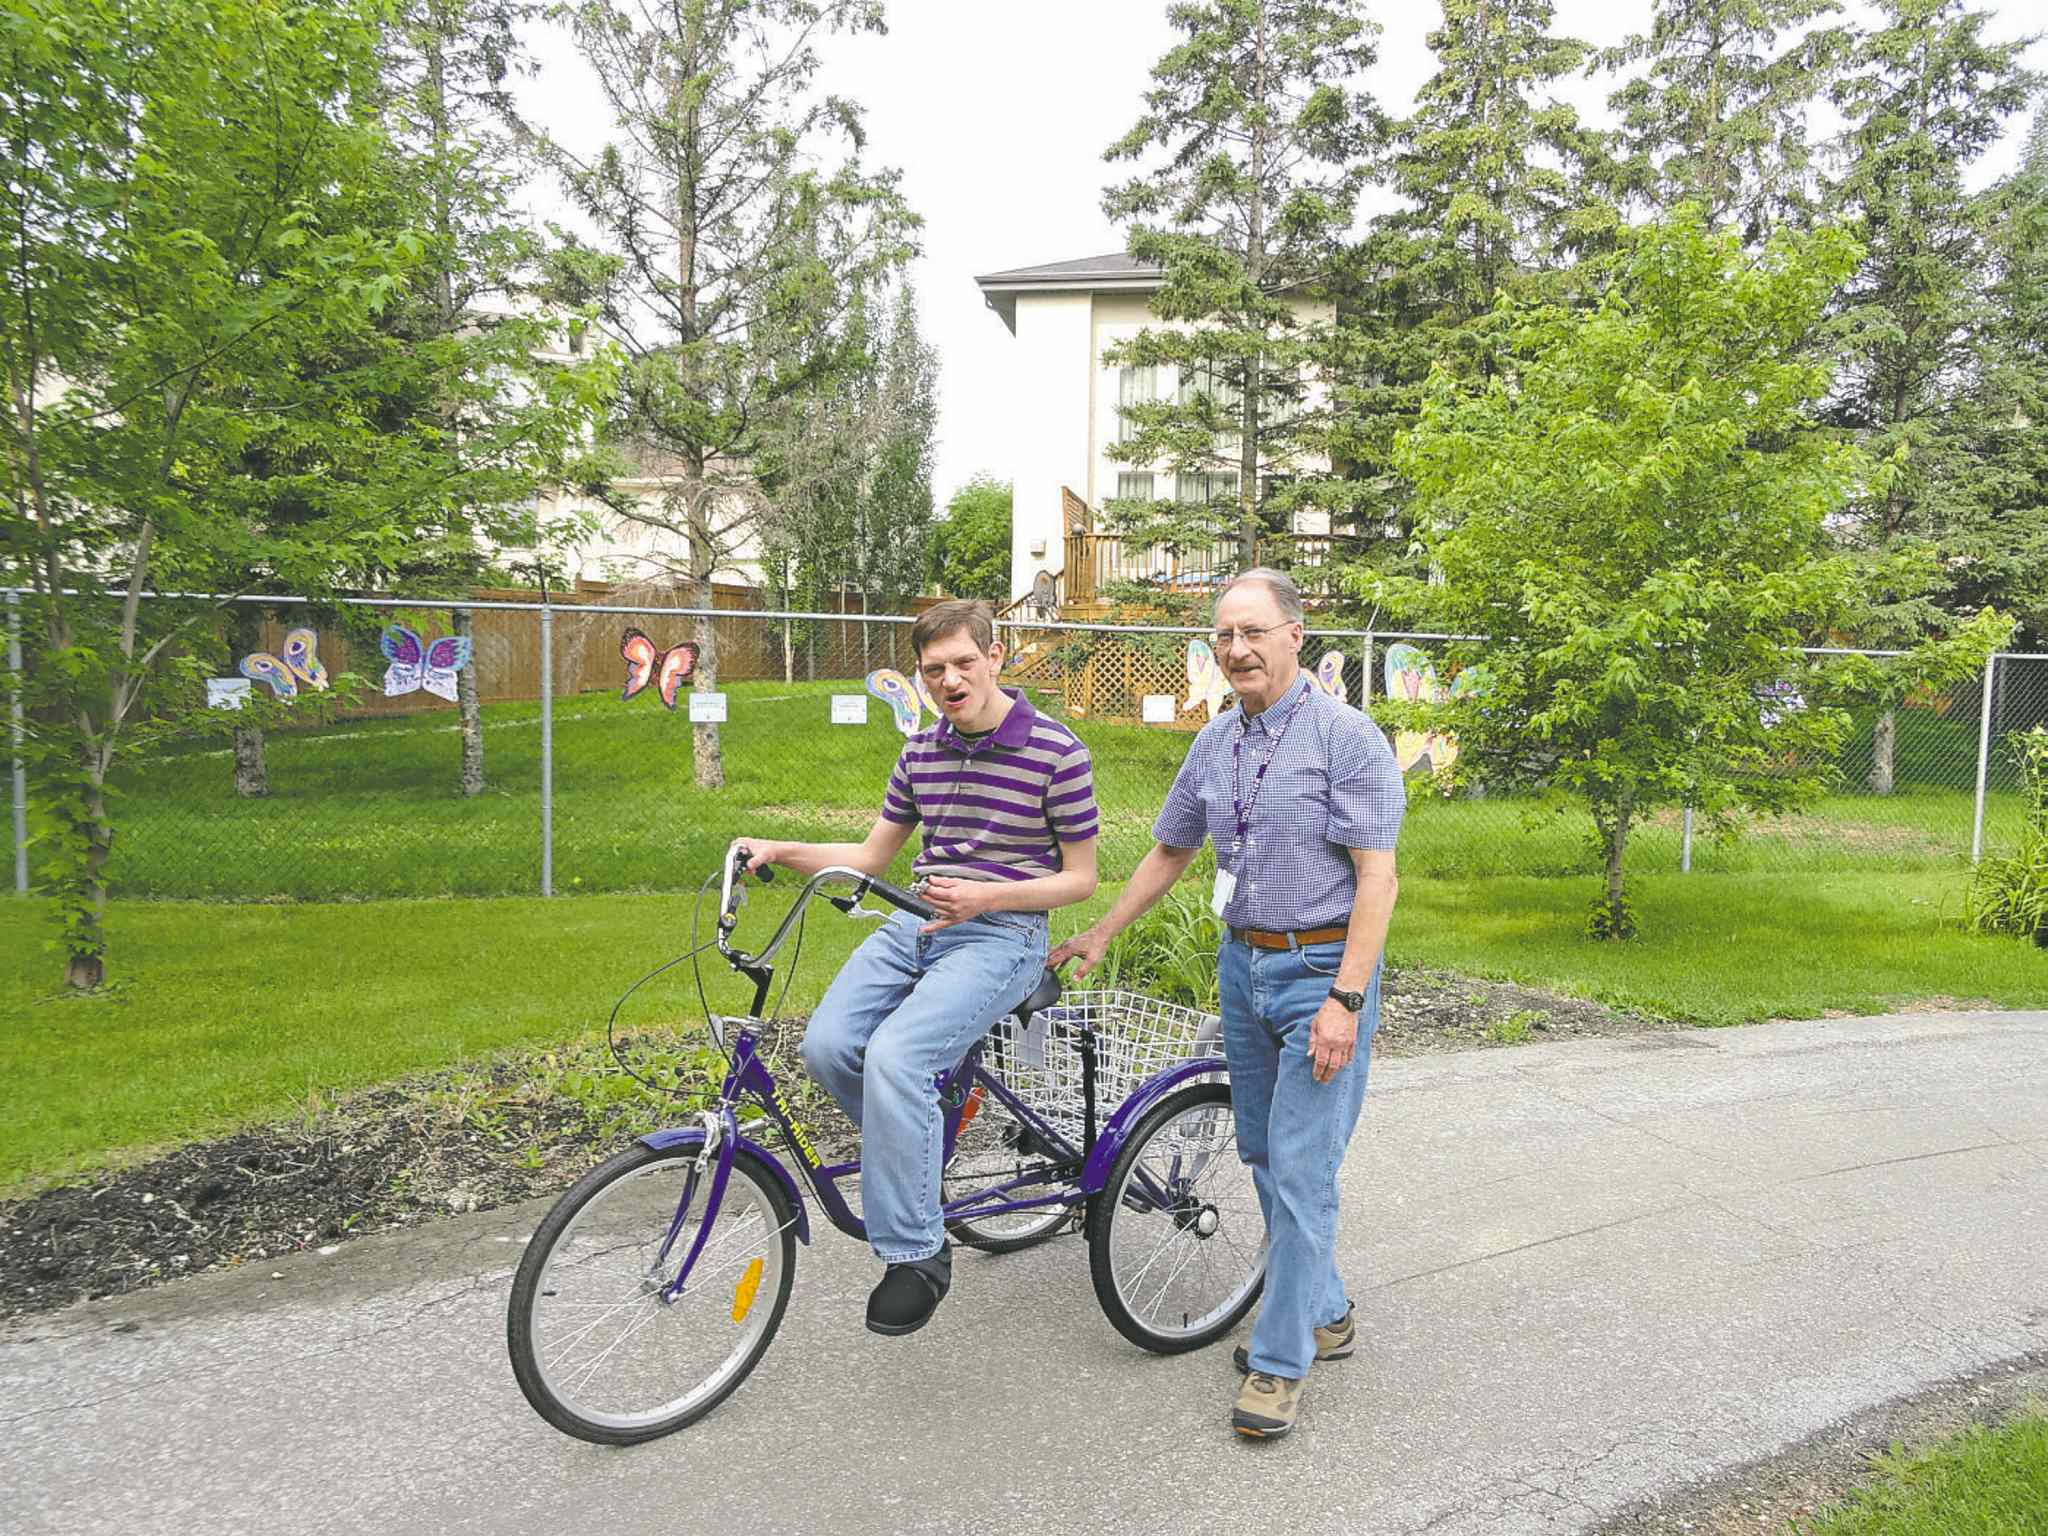 Chris Schiffmann / Winnipeg Free PressJack Froese, with friend Teddy Siwik on a bike, is St. Amant�s Volunteer of the Year.